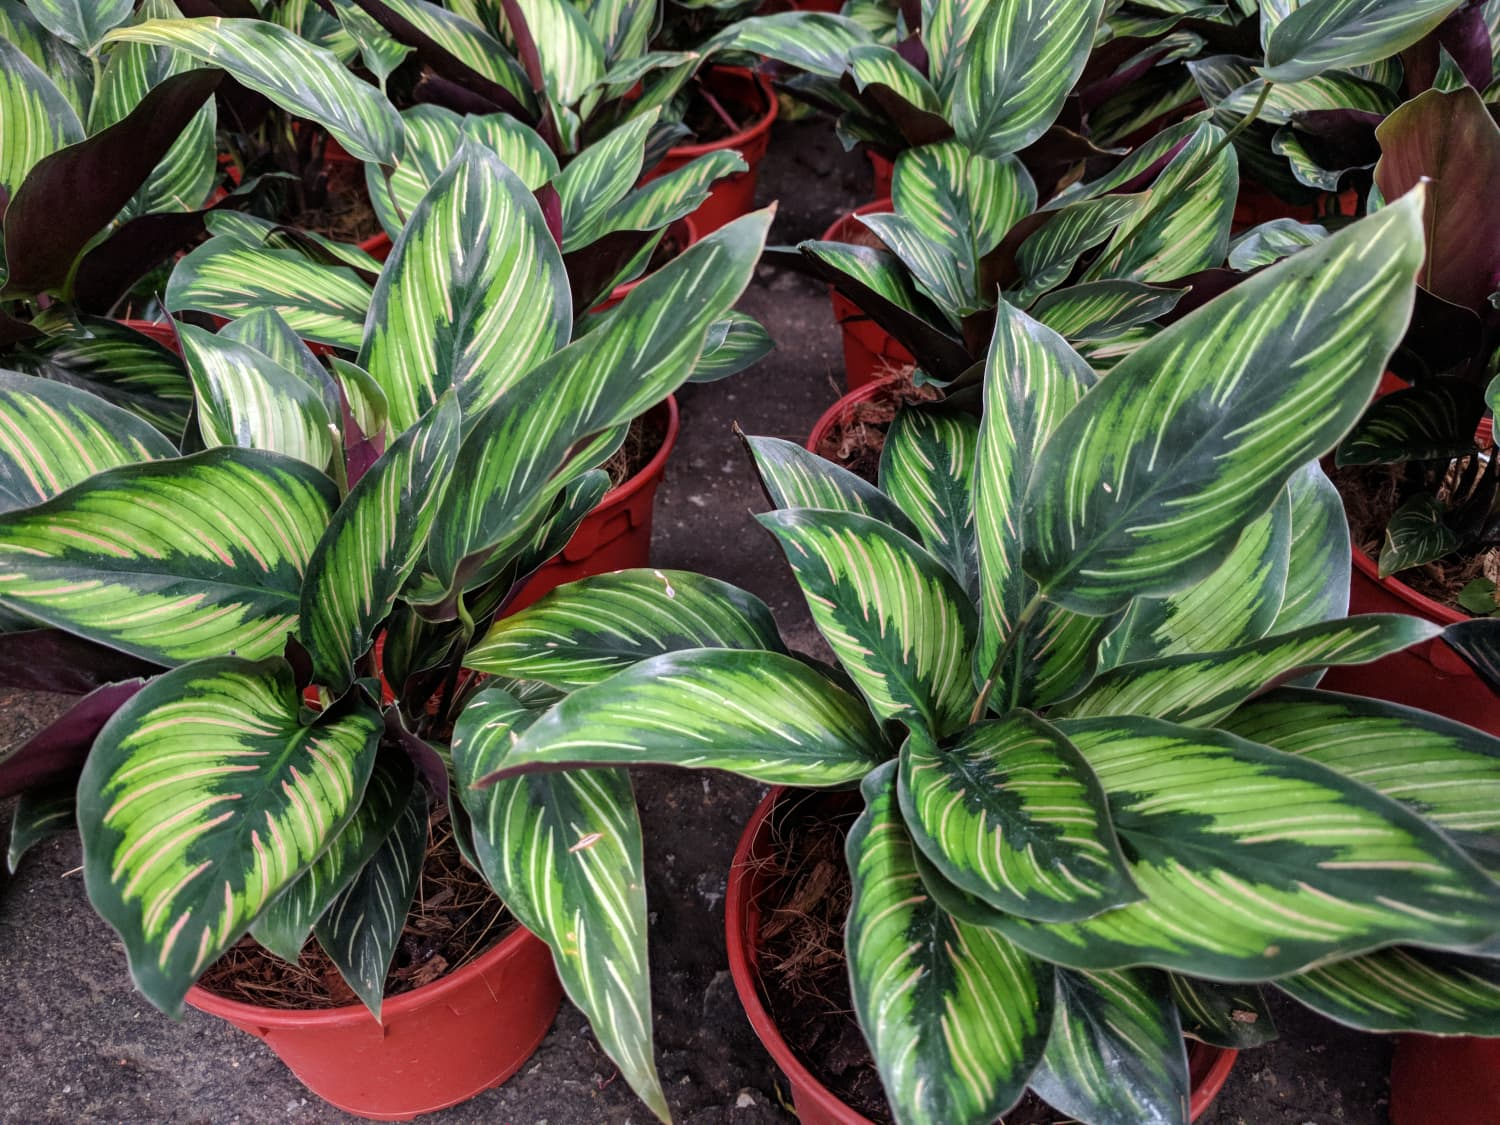 Caring for Calatheas, the Most Beautiful Low-Light Plants